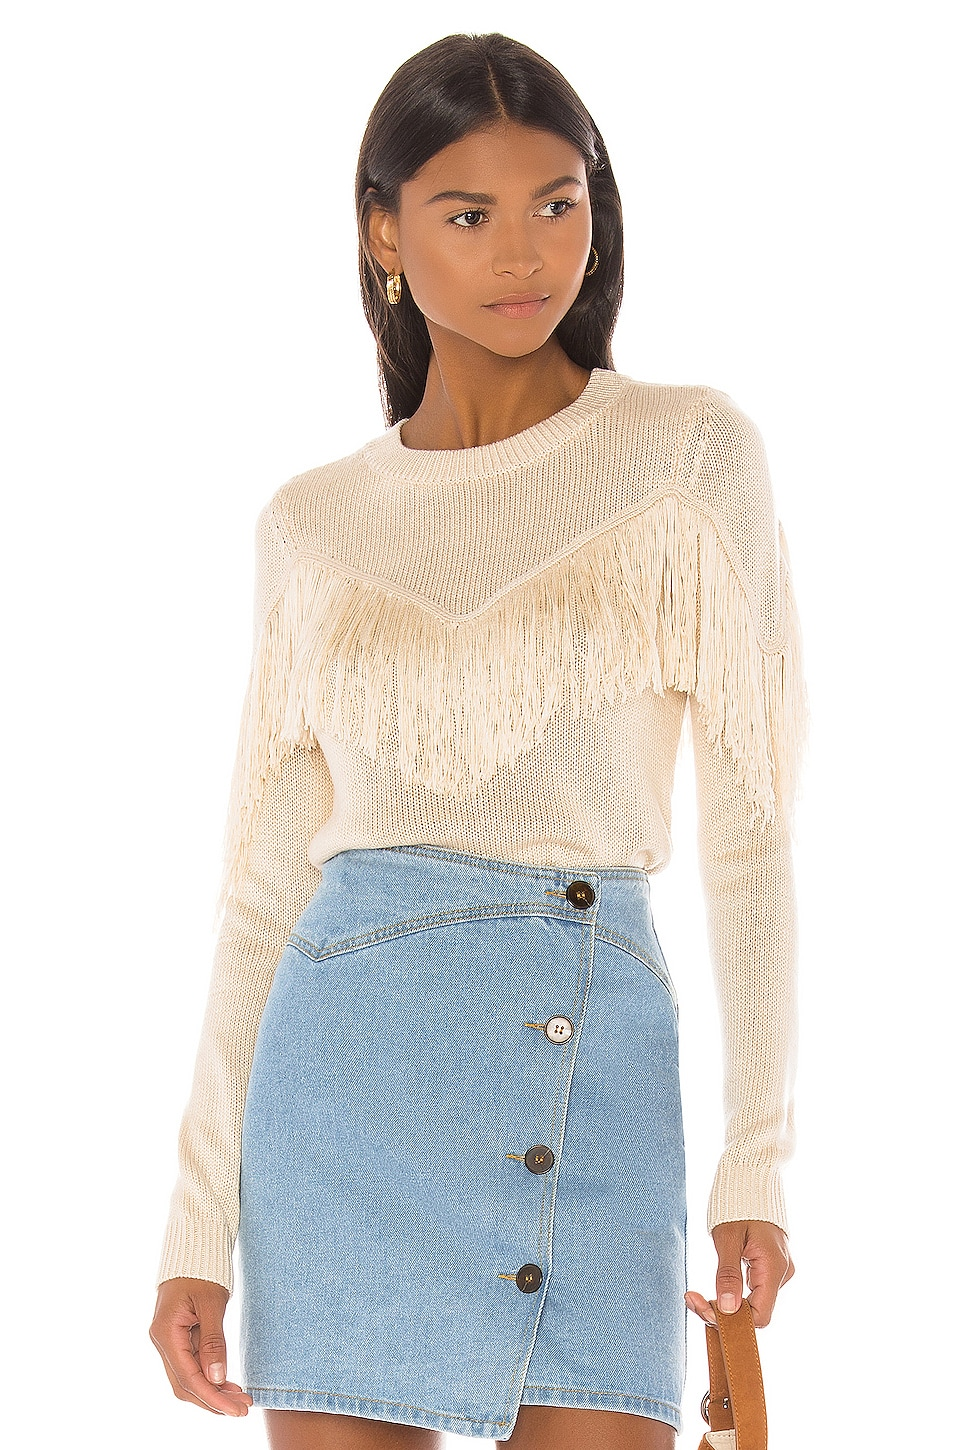 House of Harlow 1960 X REVOLVE Marnie Sweater in Ivory